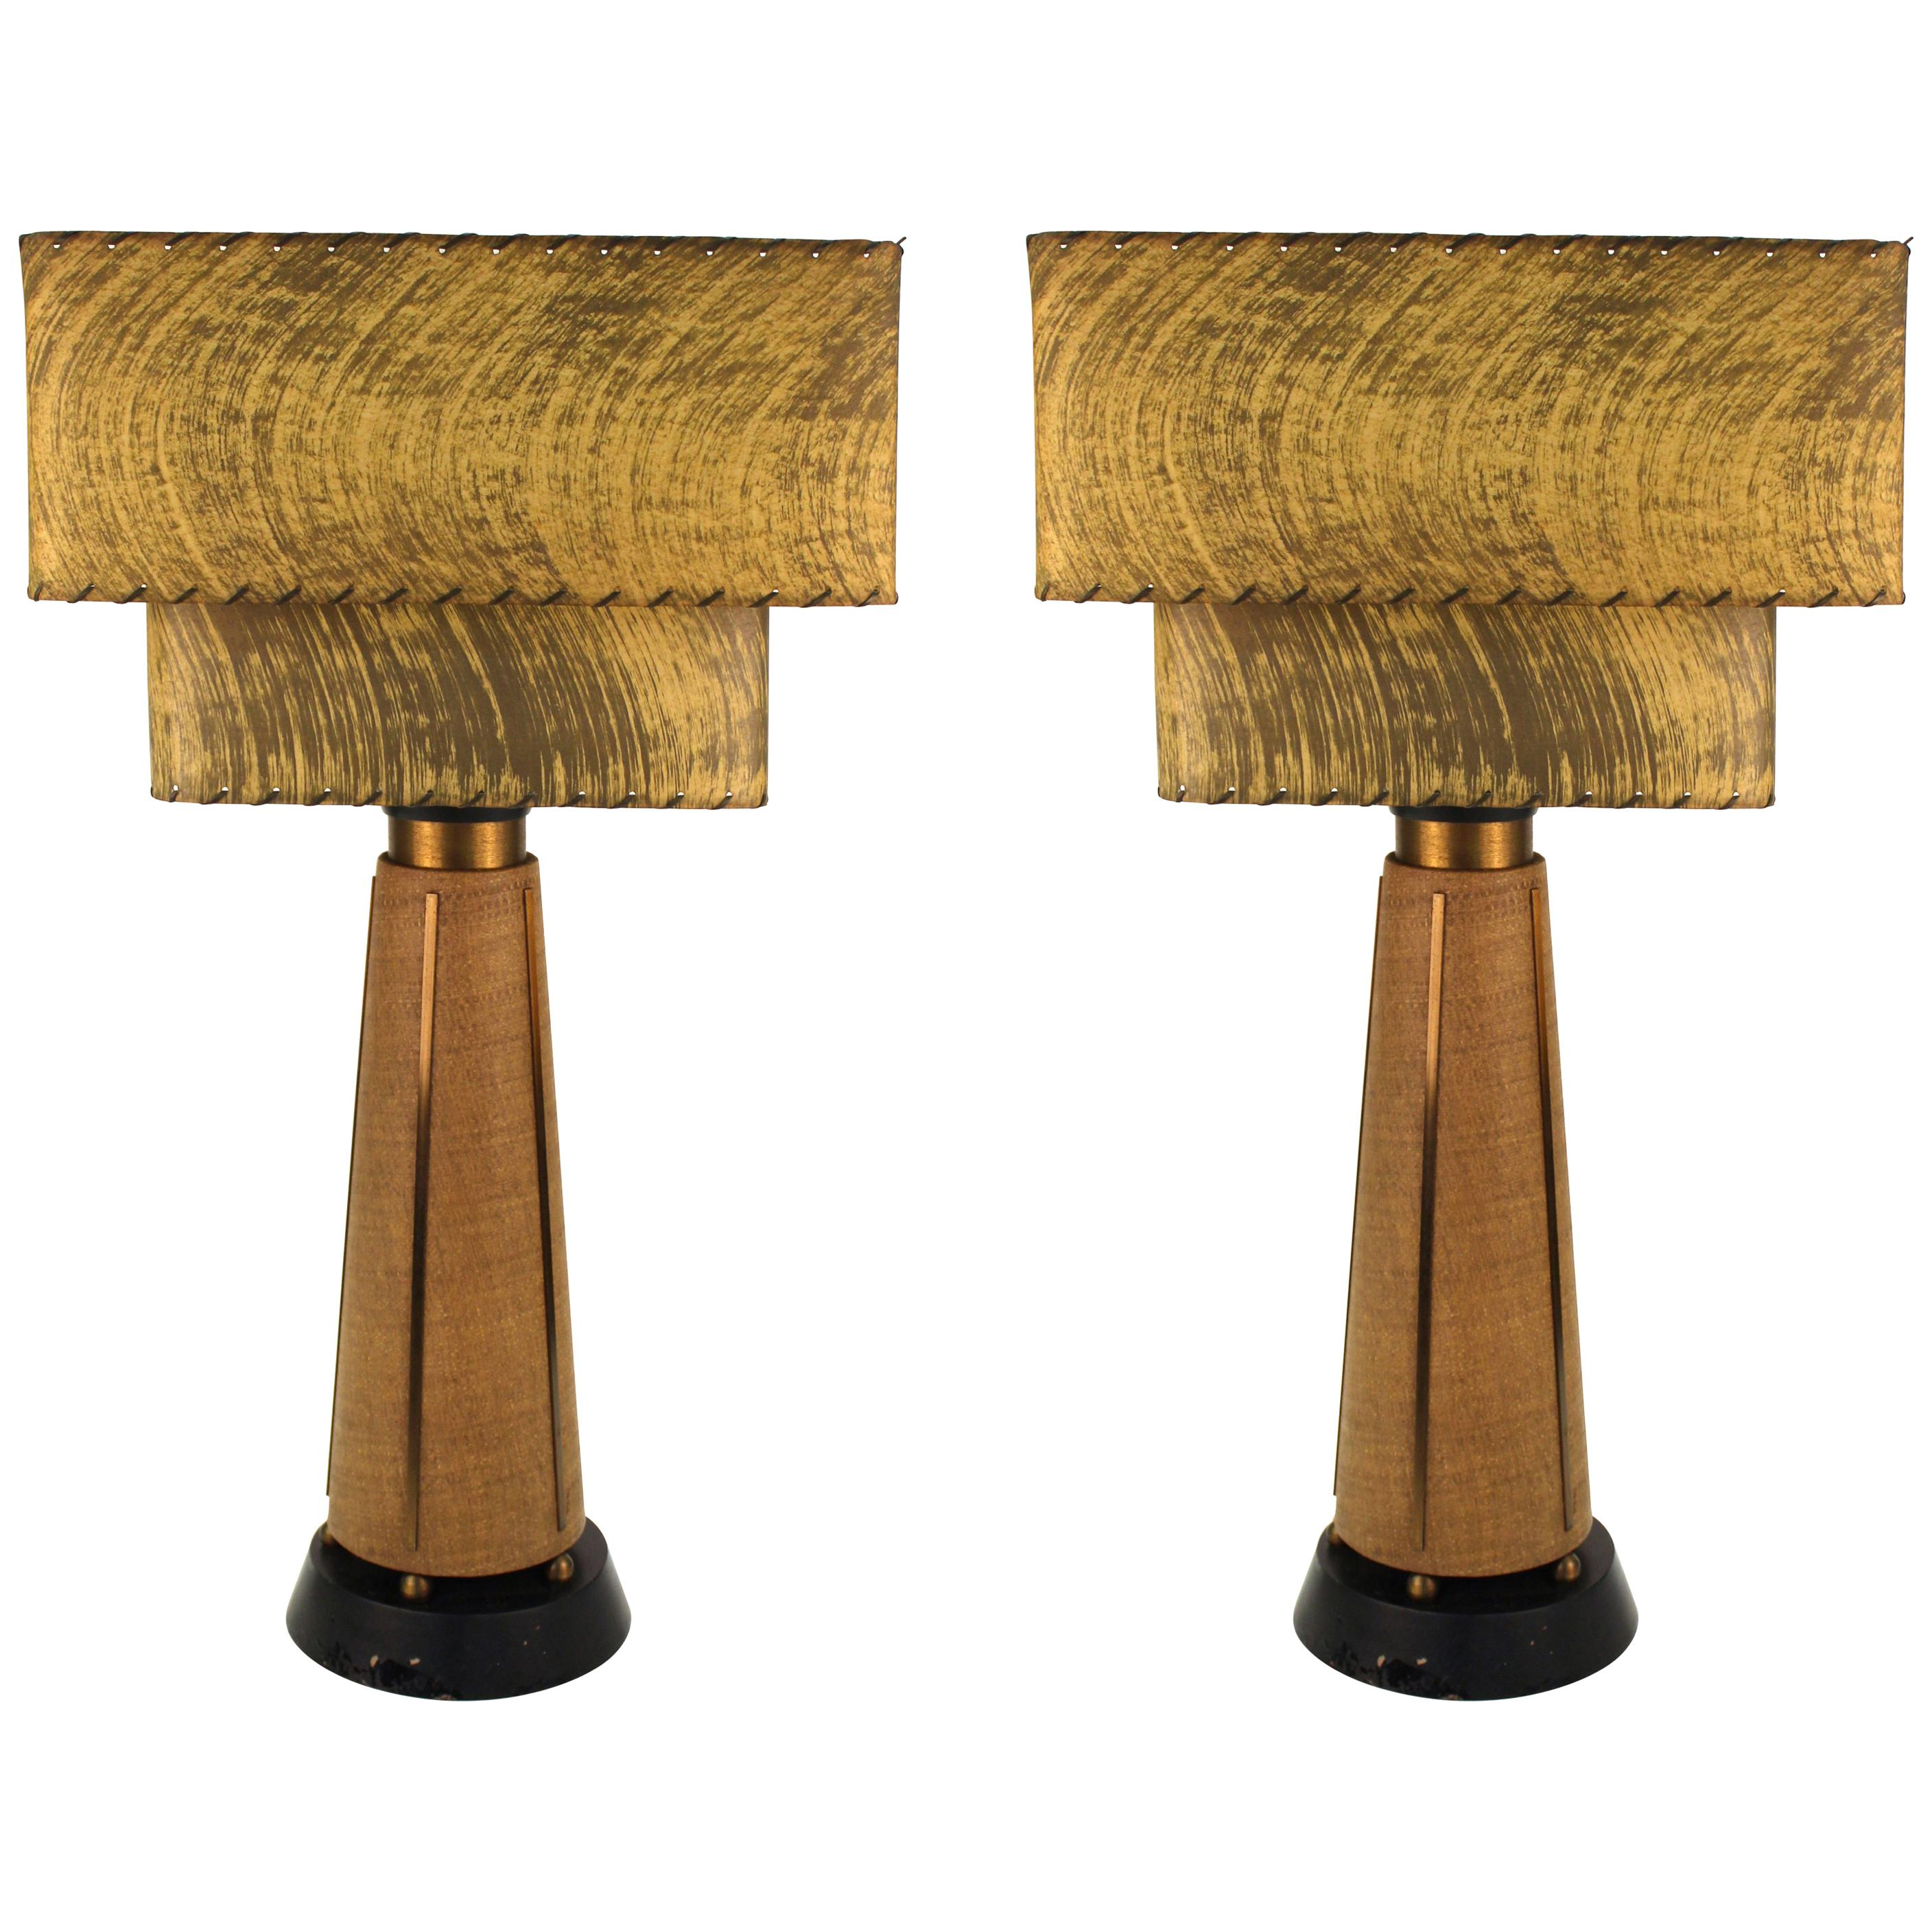 Mid-Century Modern Table Lamps with Shades